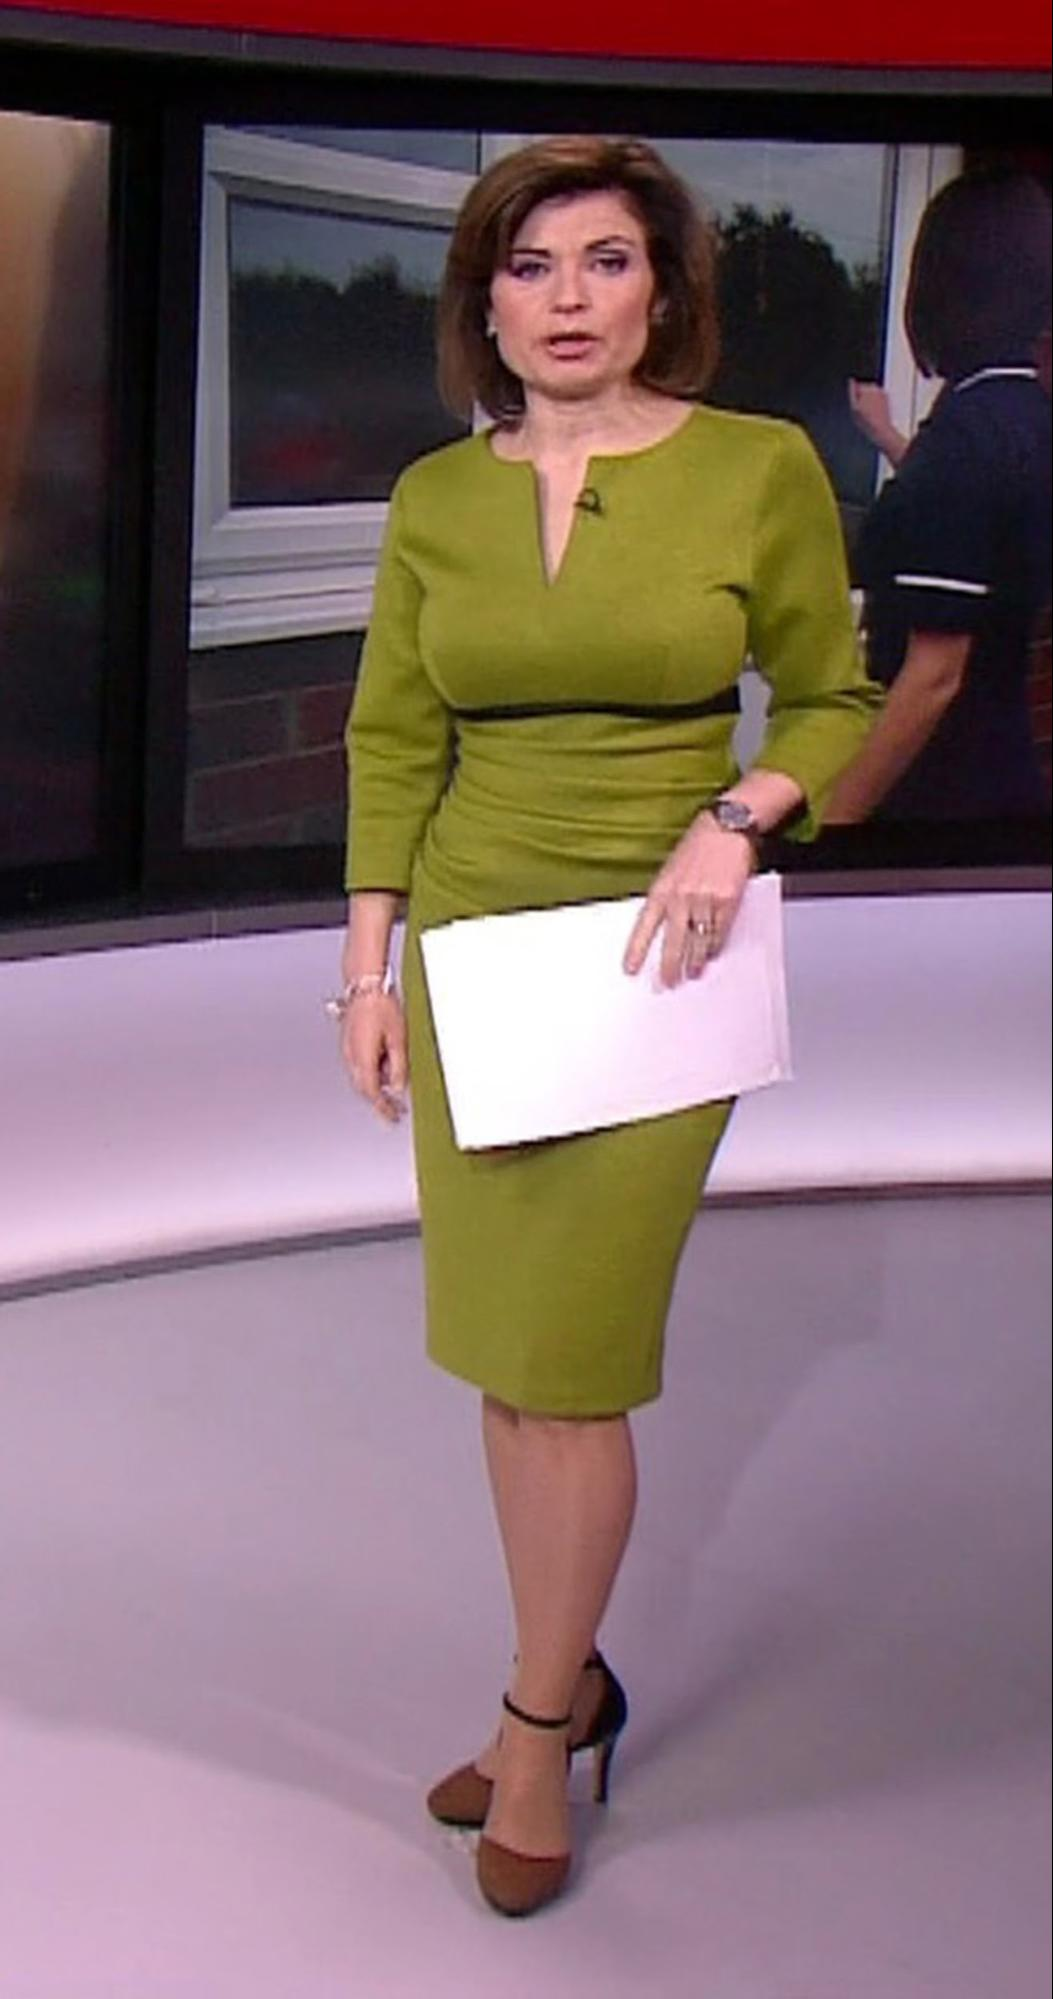 BBC News 1 o'clock newsreader Jane Hill wore a body contouring illusion dress with a black line under the chest to enhance her natural figure. Credit: pixel 8000